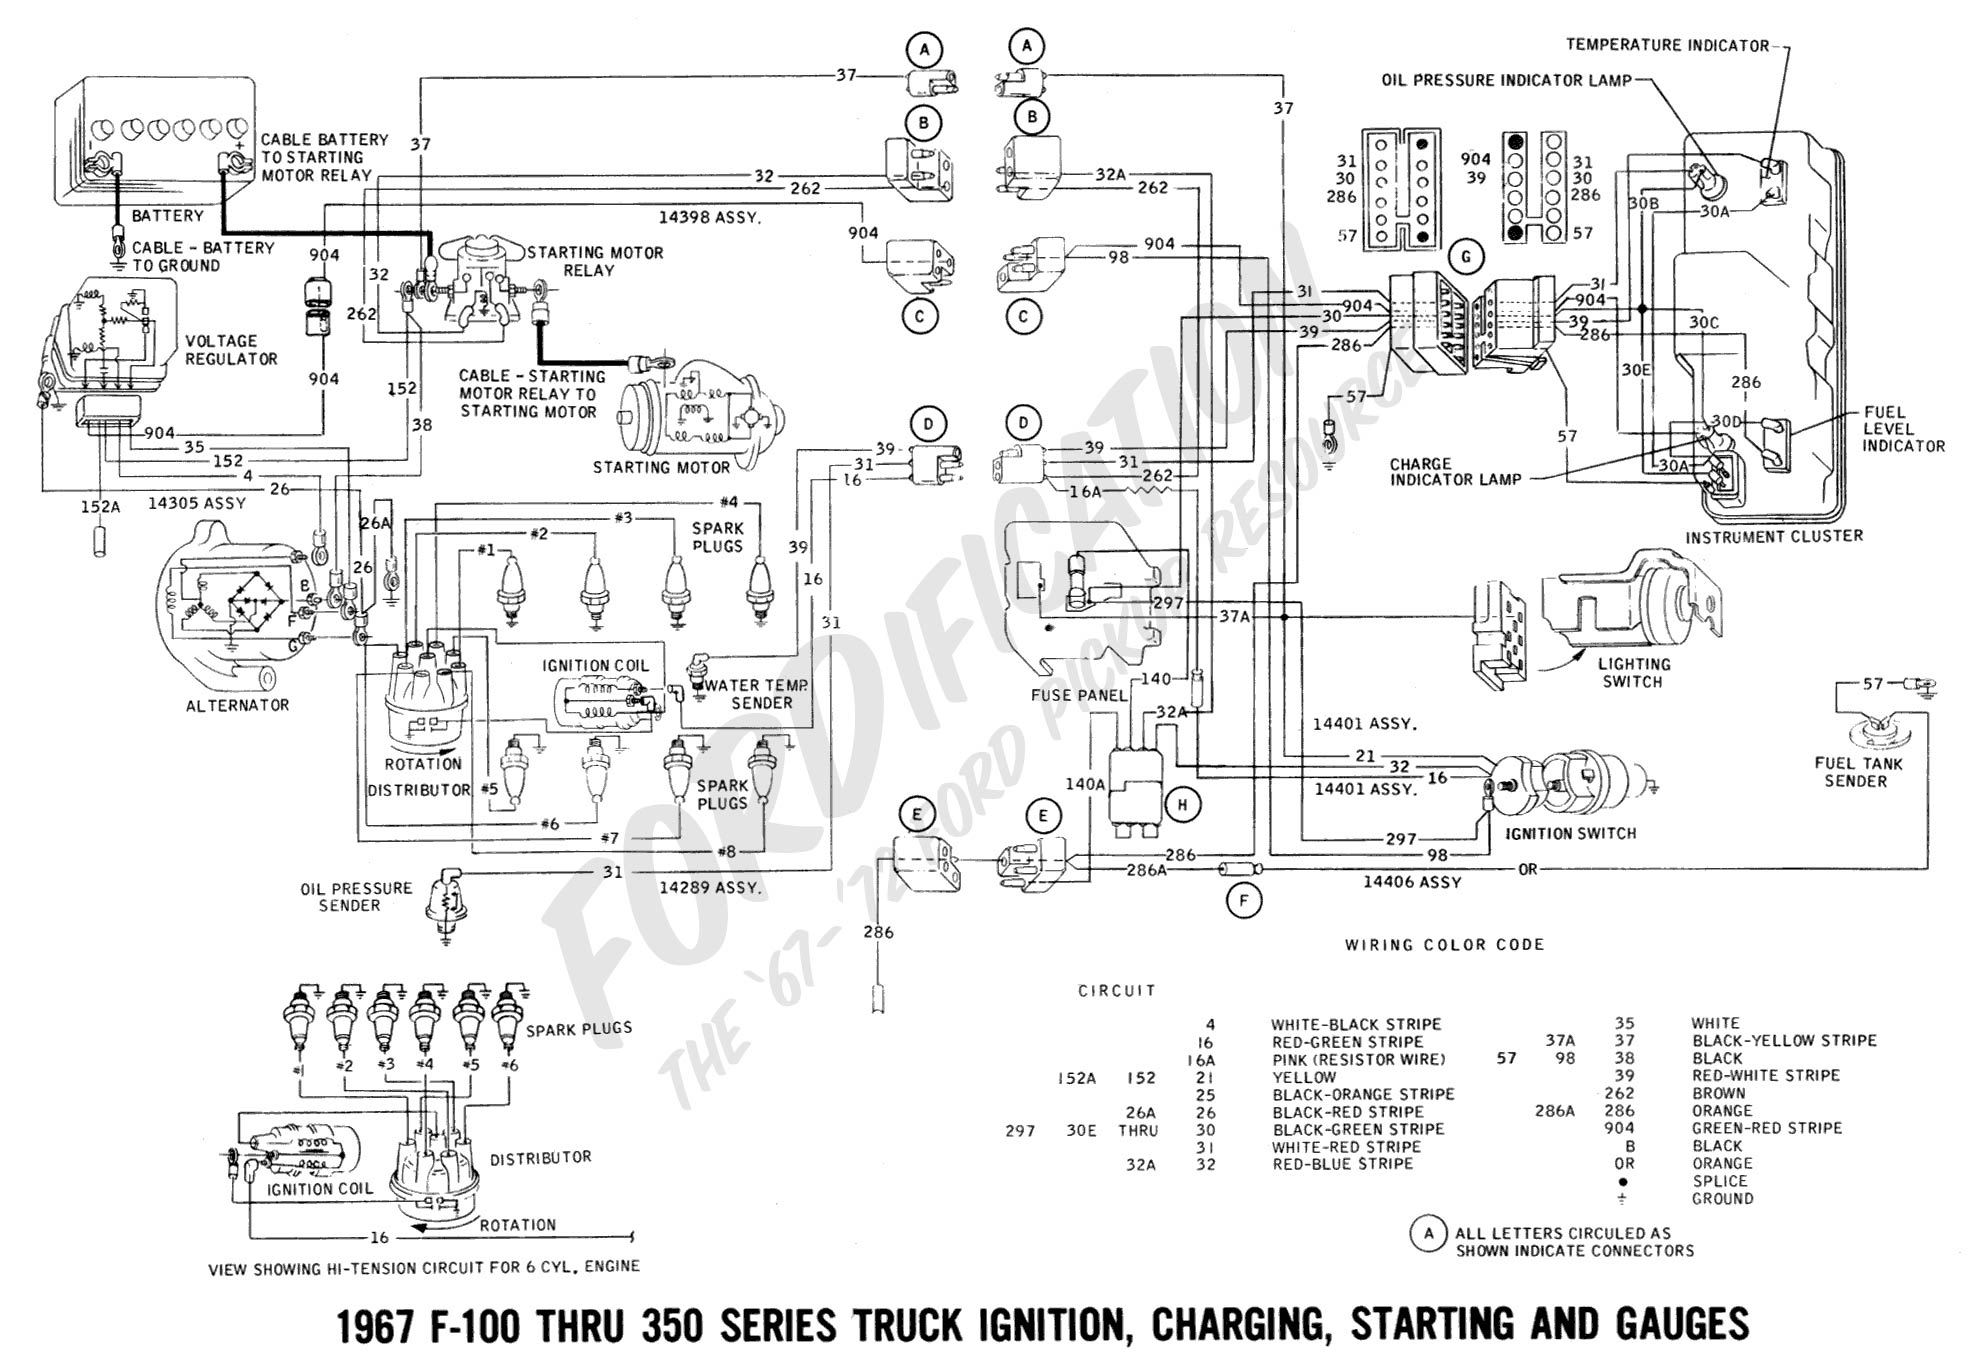 bf falcon audio wiring diagram 2002 yamaha virago 250 1970 ford ignition onlineford harness all data